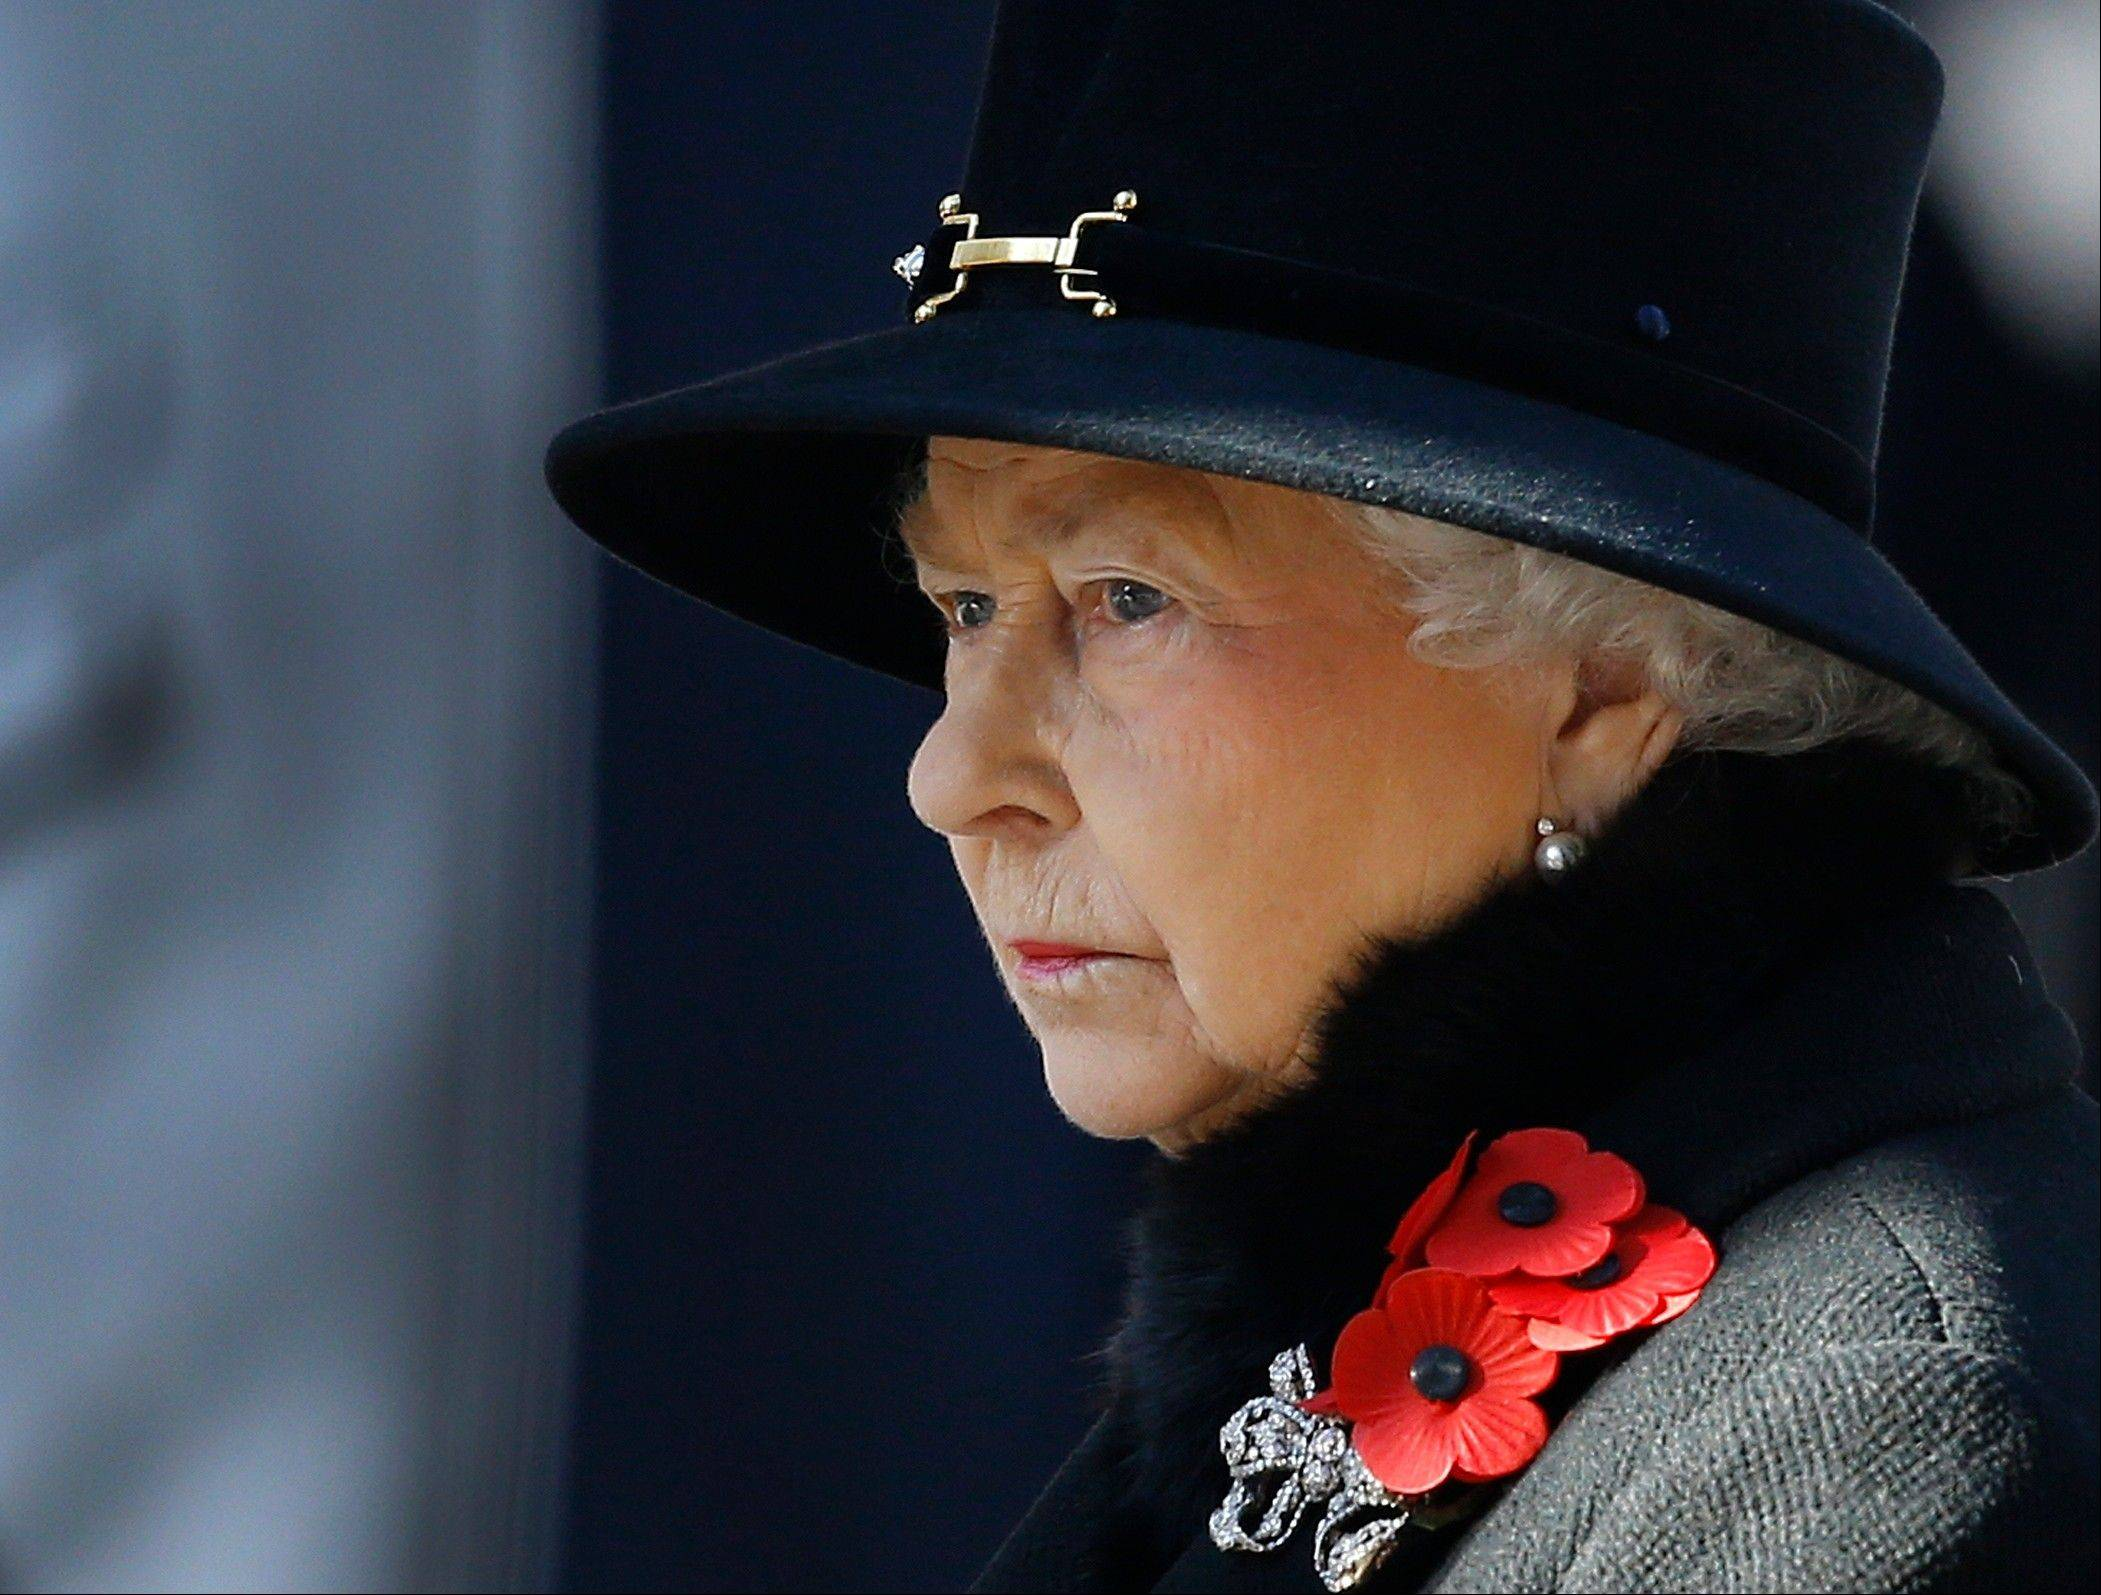 A monarch�s life is not all luxury and glamour. A report by British lawmakers into the finances of Queen Elizabeth II has exposed crumbling palaces and depleted coffers, and discovered that a royal reserve fund for emergencies is down to its last $1.6 million.